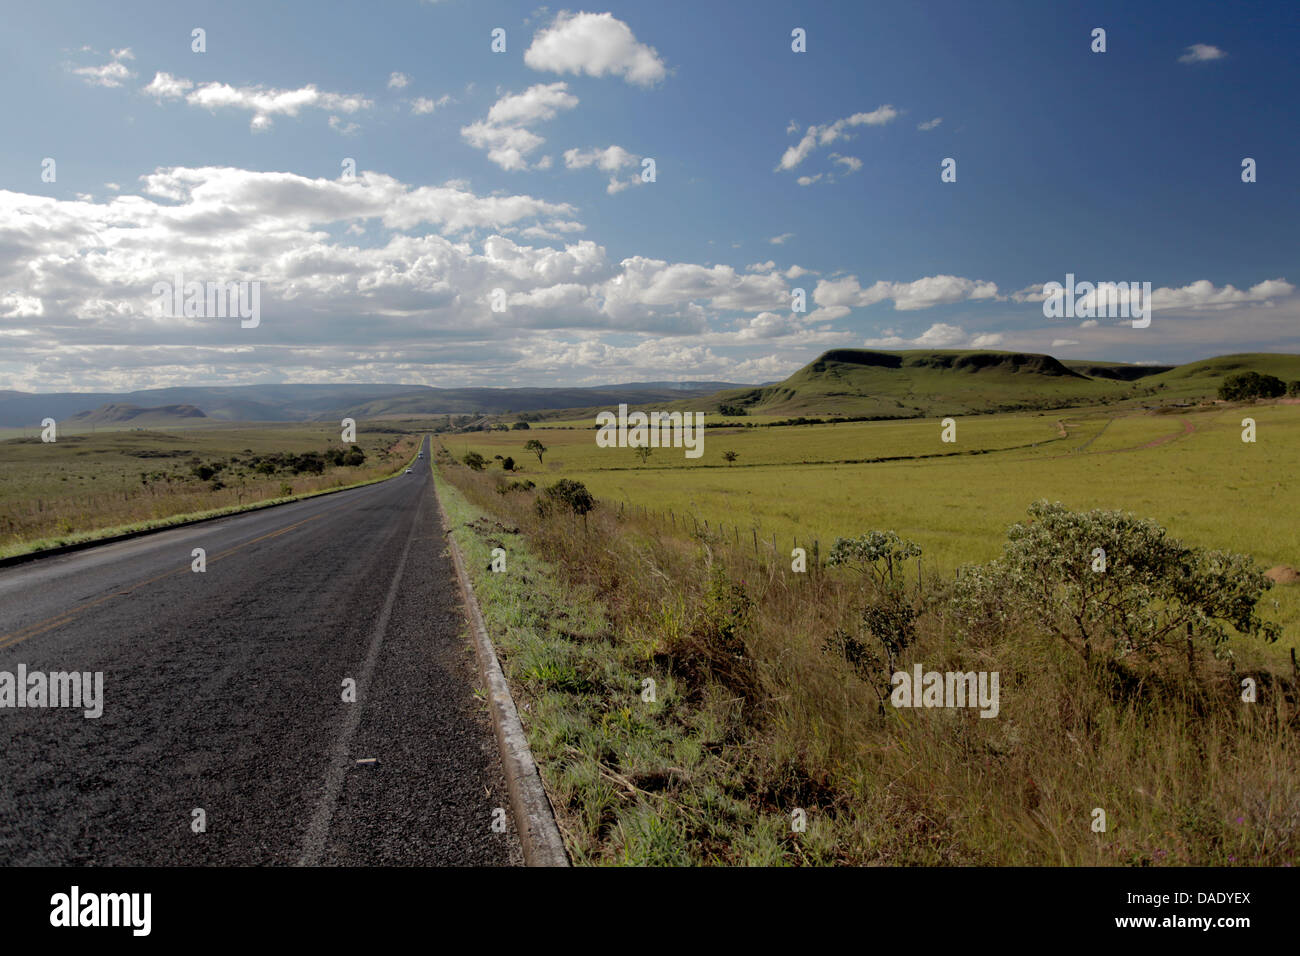 Highway, Road at Chapada dos Veadeiros in Goiás Brazil - Stock Image